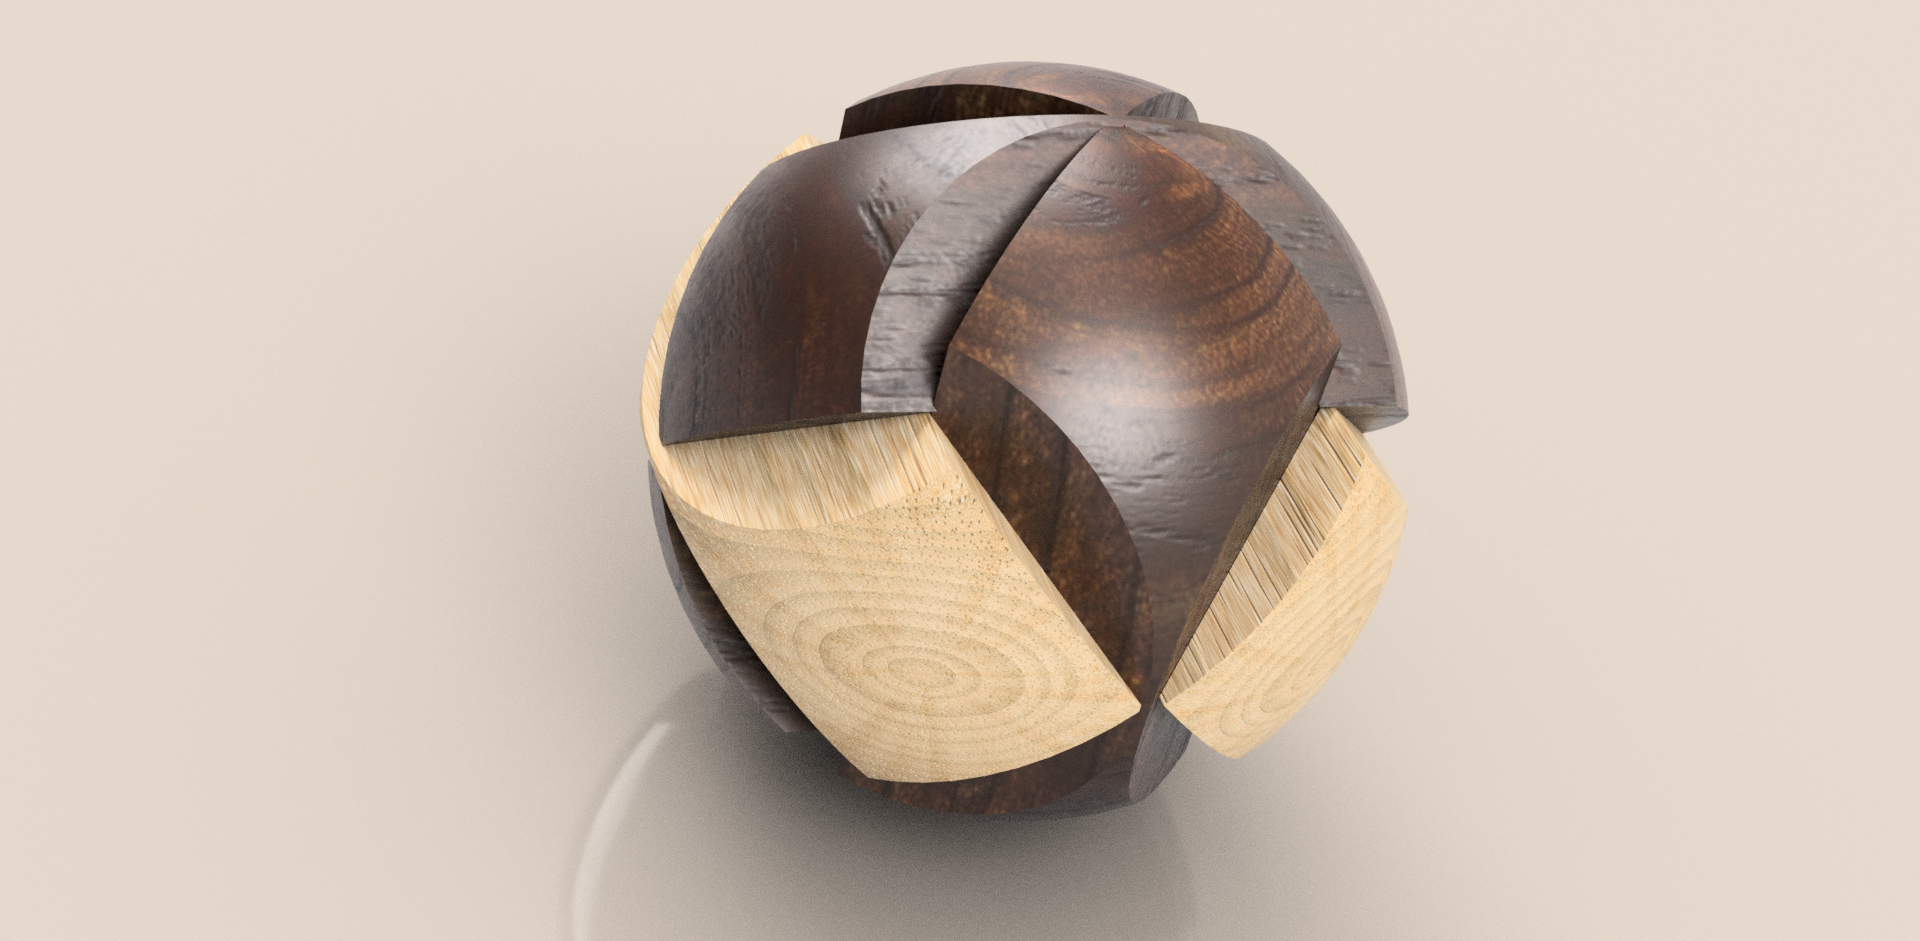 Wooden Ball Puzzle 3D Model